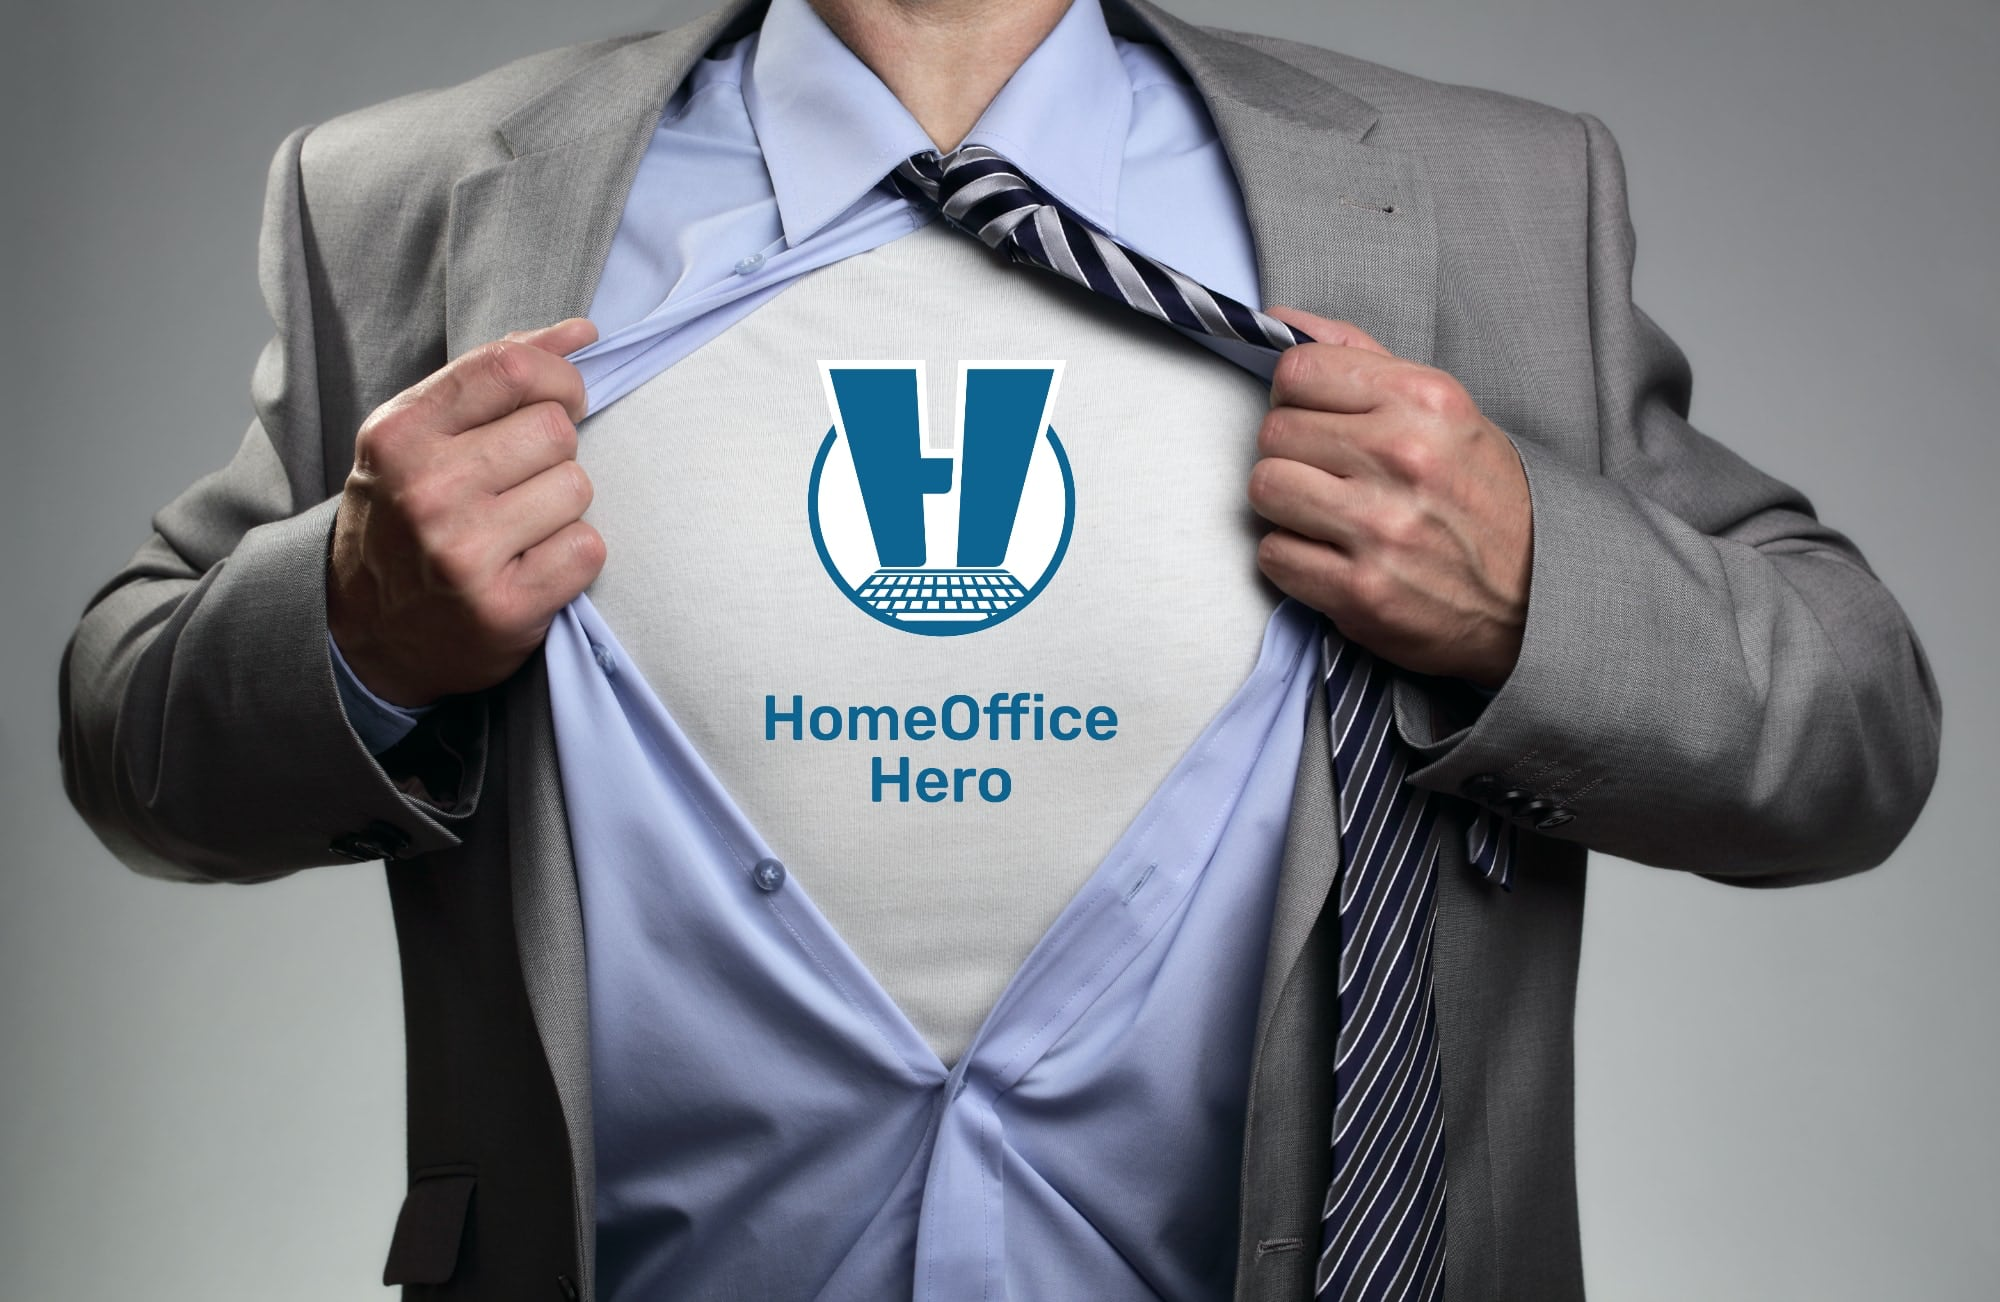 HomeOffice Hero